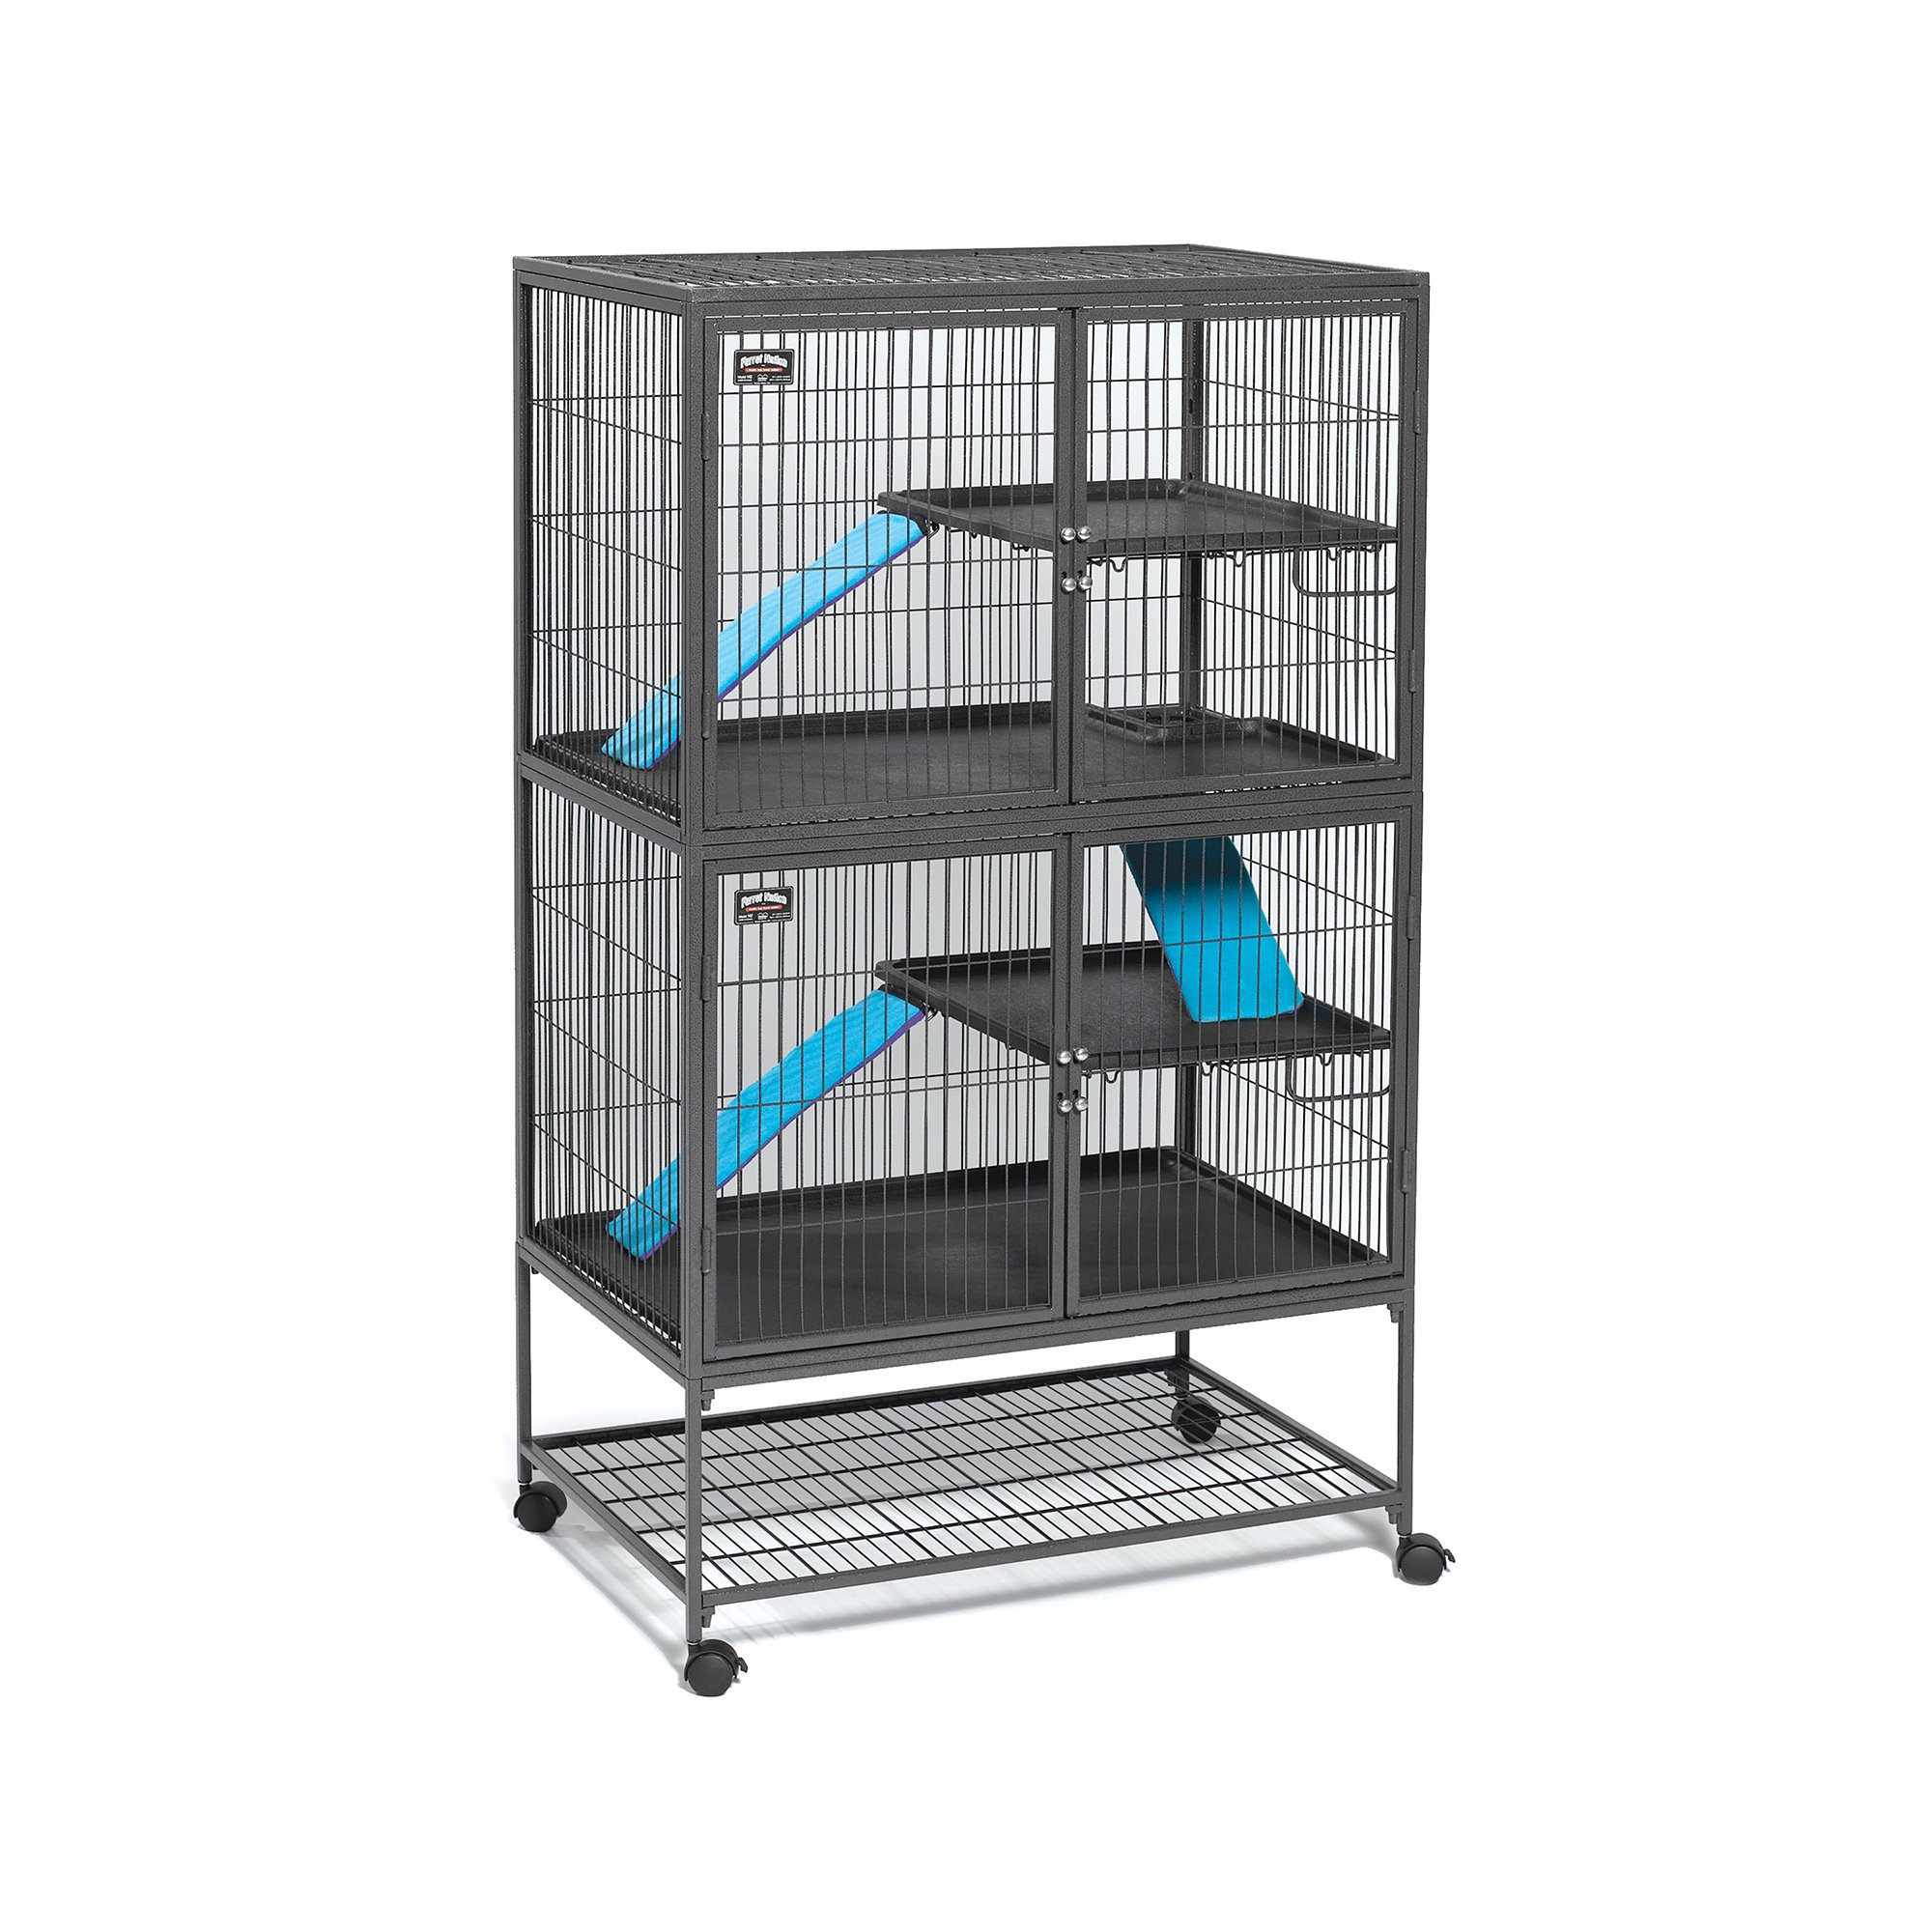 MidWest Deluxe Ferret Nation Double Unit Ferret Cage (Model 182) Includes 2 leak-Proof Pans, 2 Shelves, 3 Ramps w/ Ramp Covers & 4 locking Wheel Casters, Measures 36''L x 25''W x 62.5''H Inches